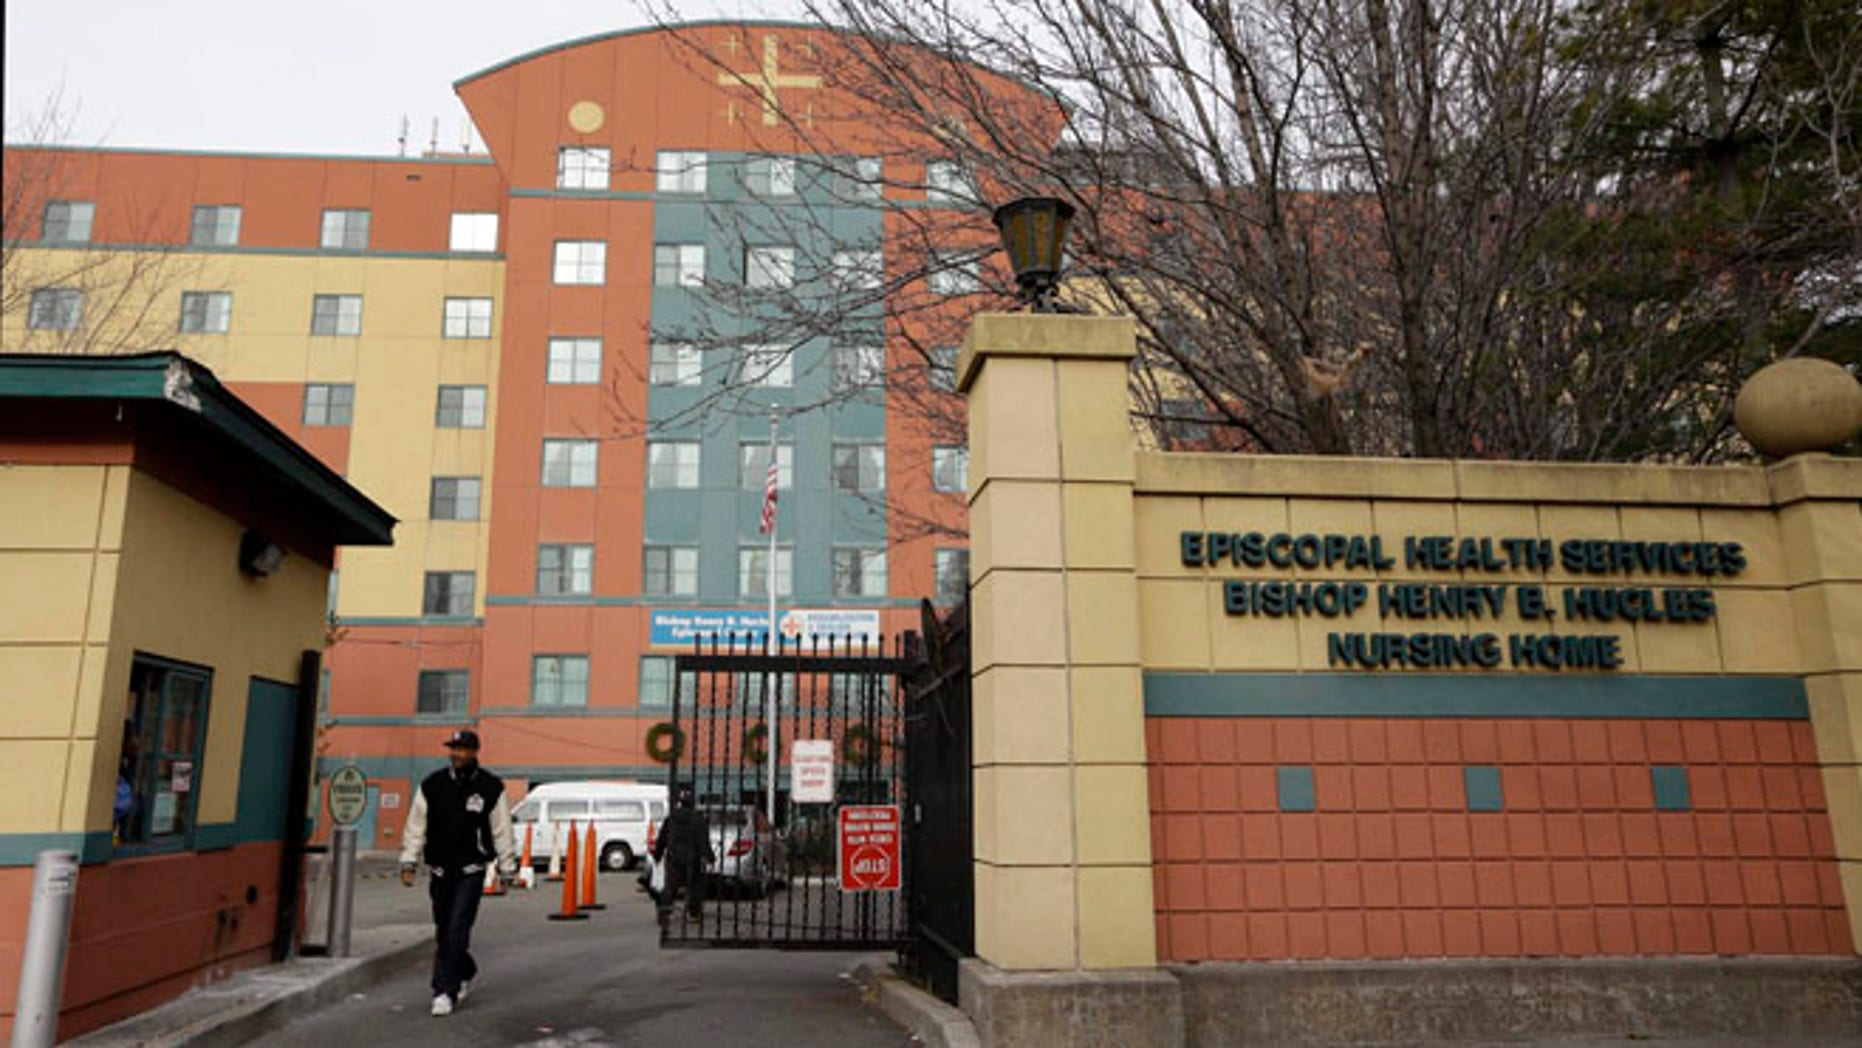 Dec. 24, 2012: This file photo shows the Bishop Henry B. Hucles Episcopal Rehabilitation and Skilled Nursing Center in New York.